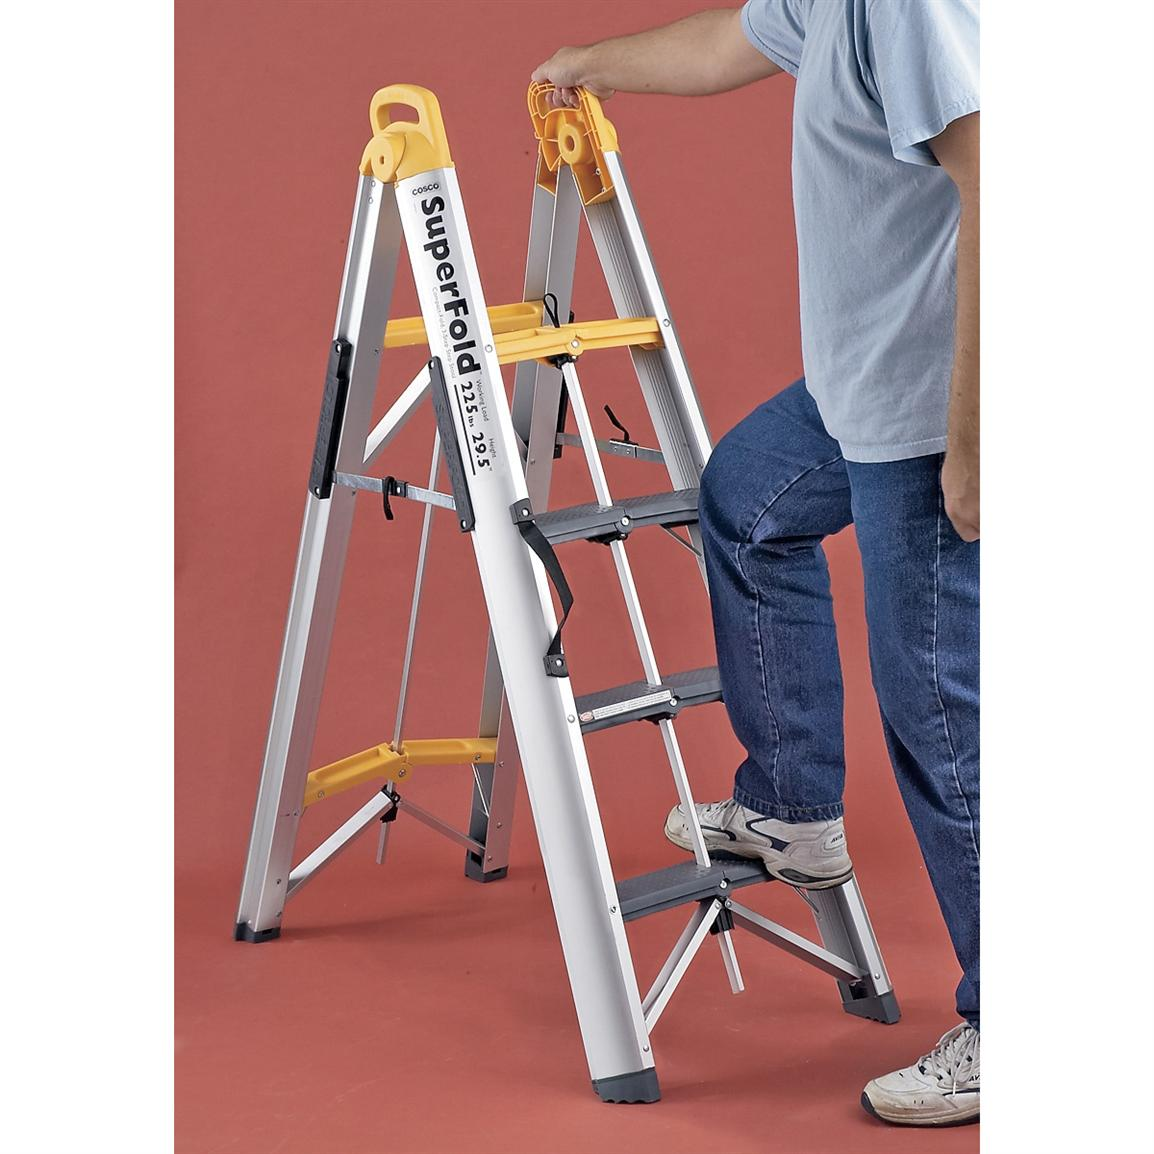 Cosco Superfold 174 3 Step Ladder 49555 Garage Amp Tool